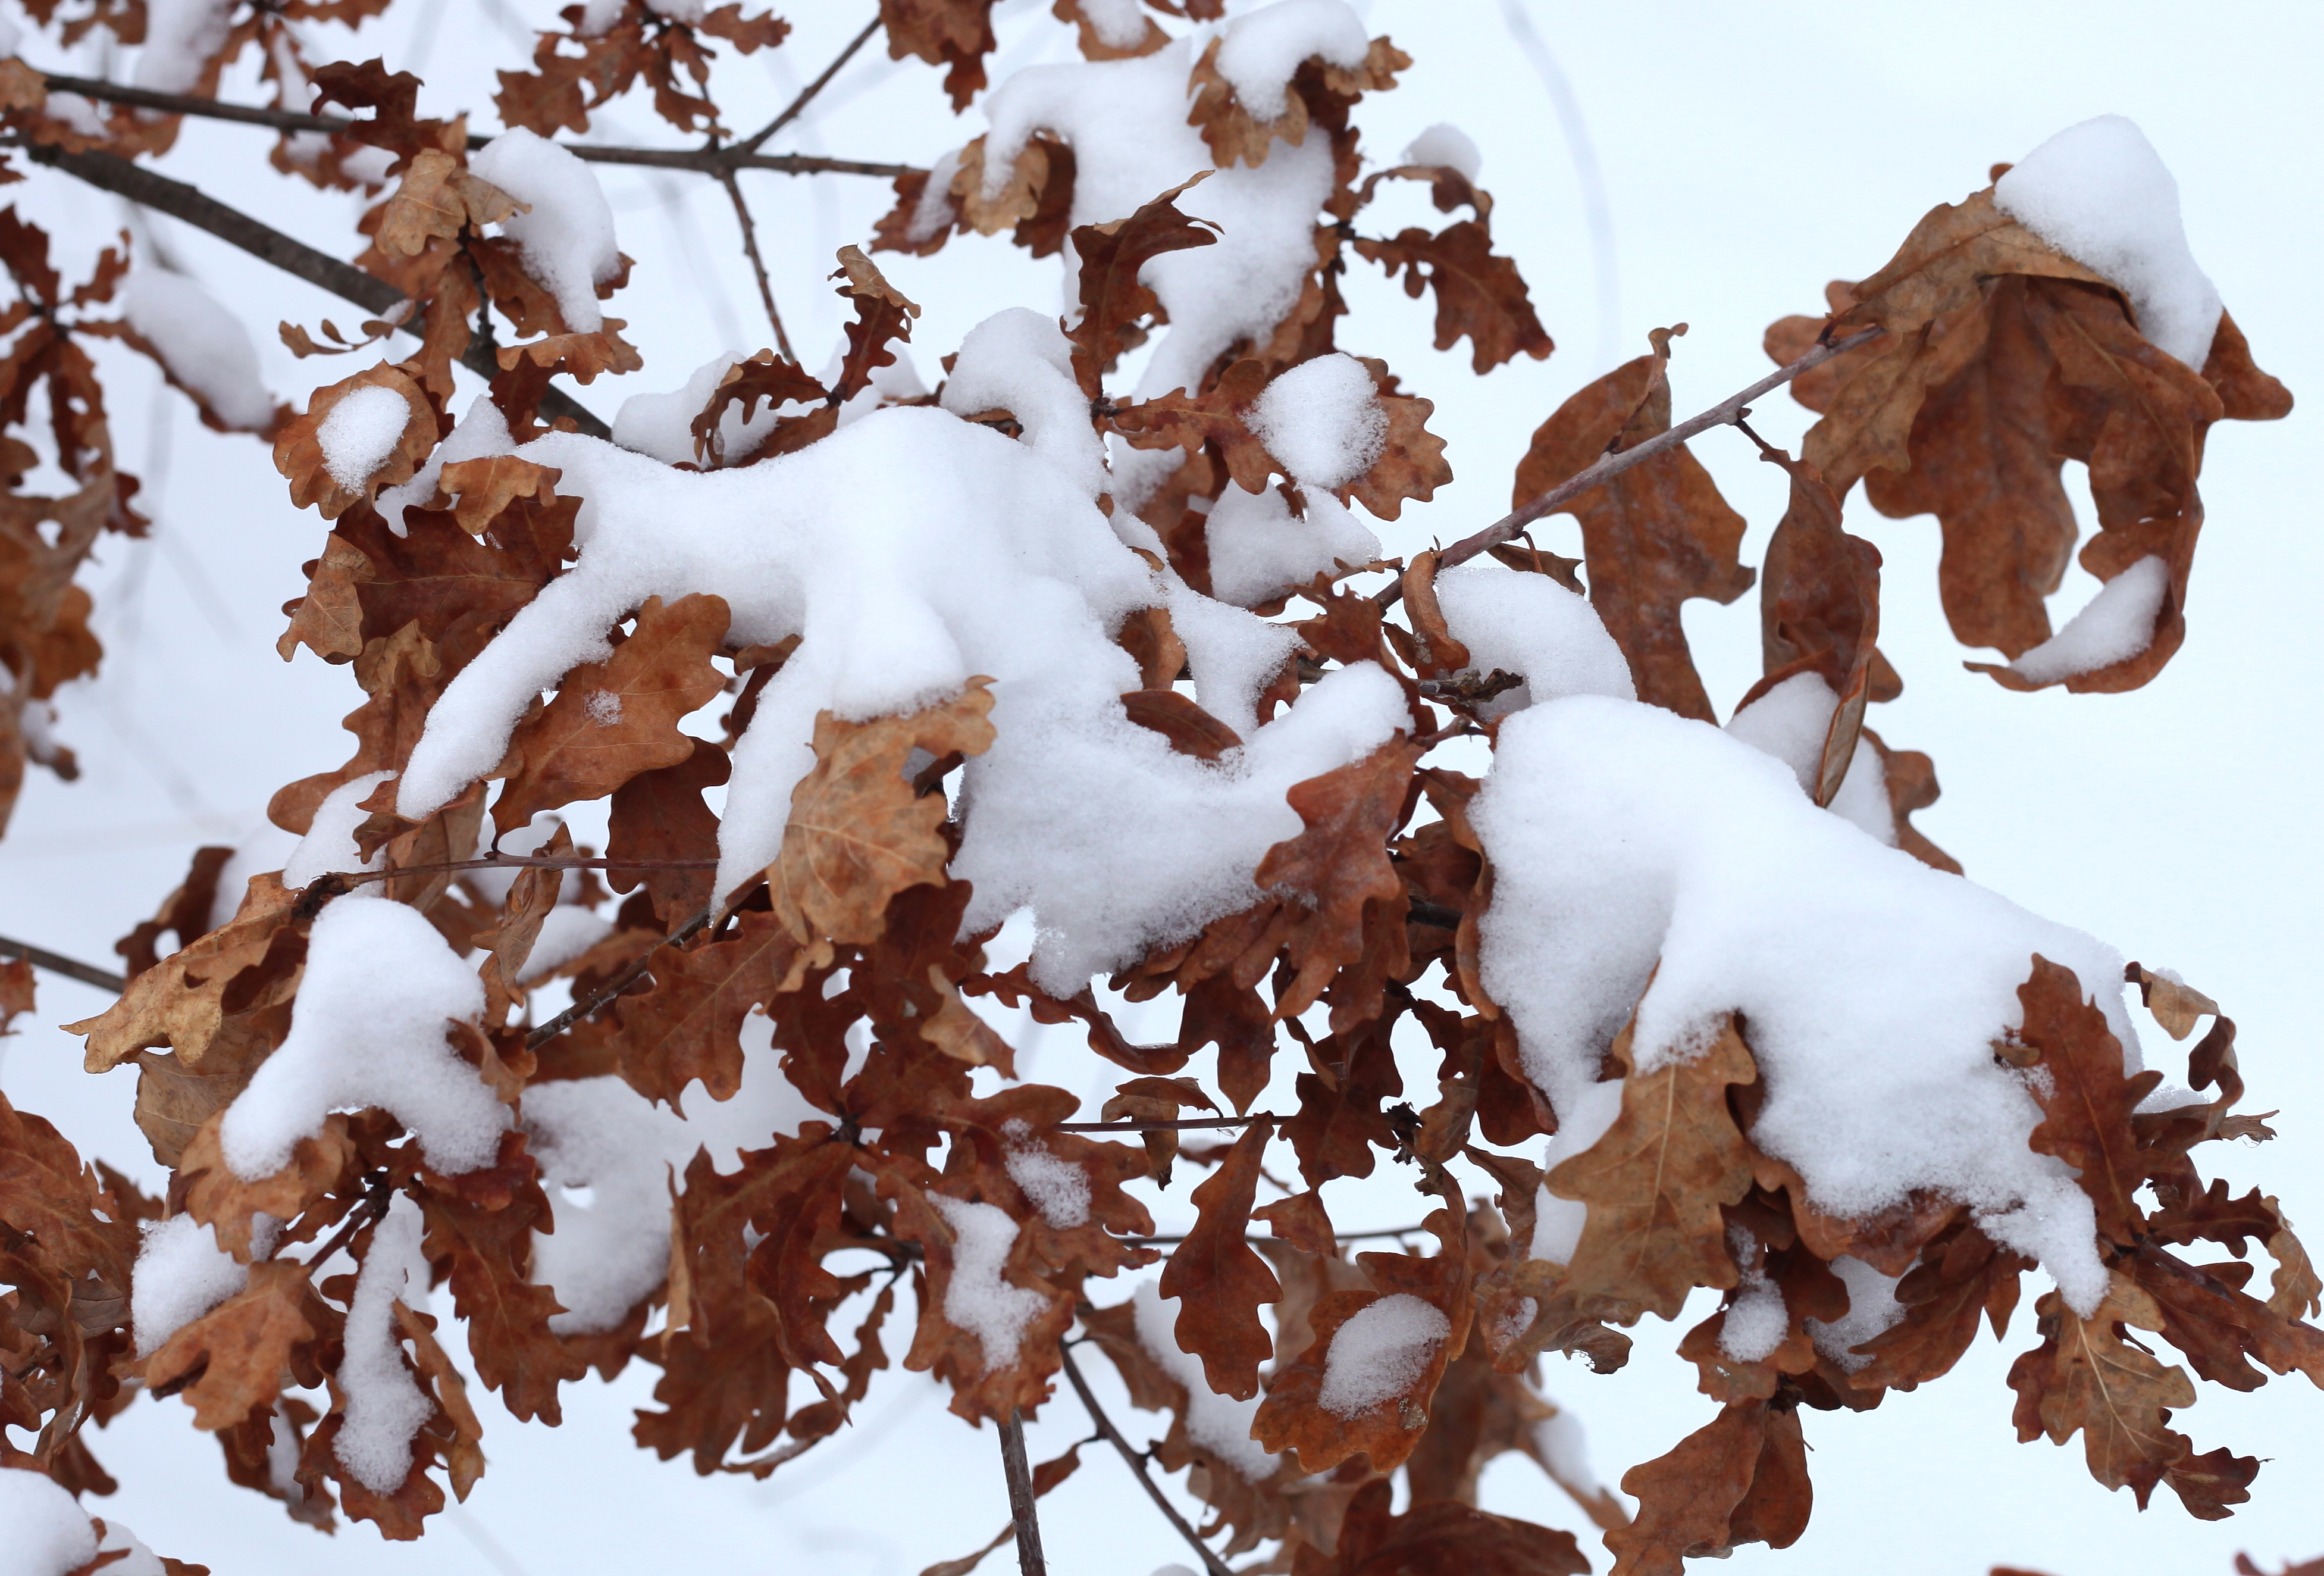 an oak tree dry leaves covered with snow